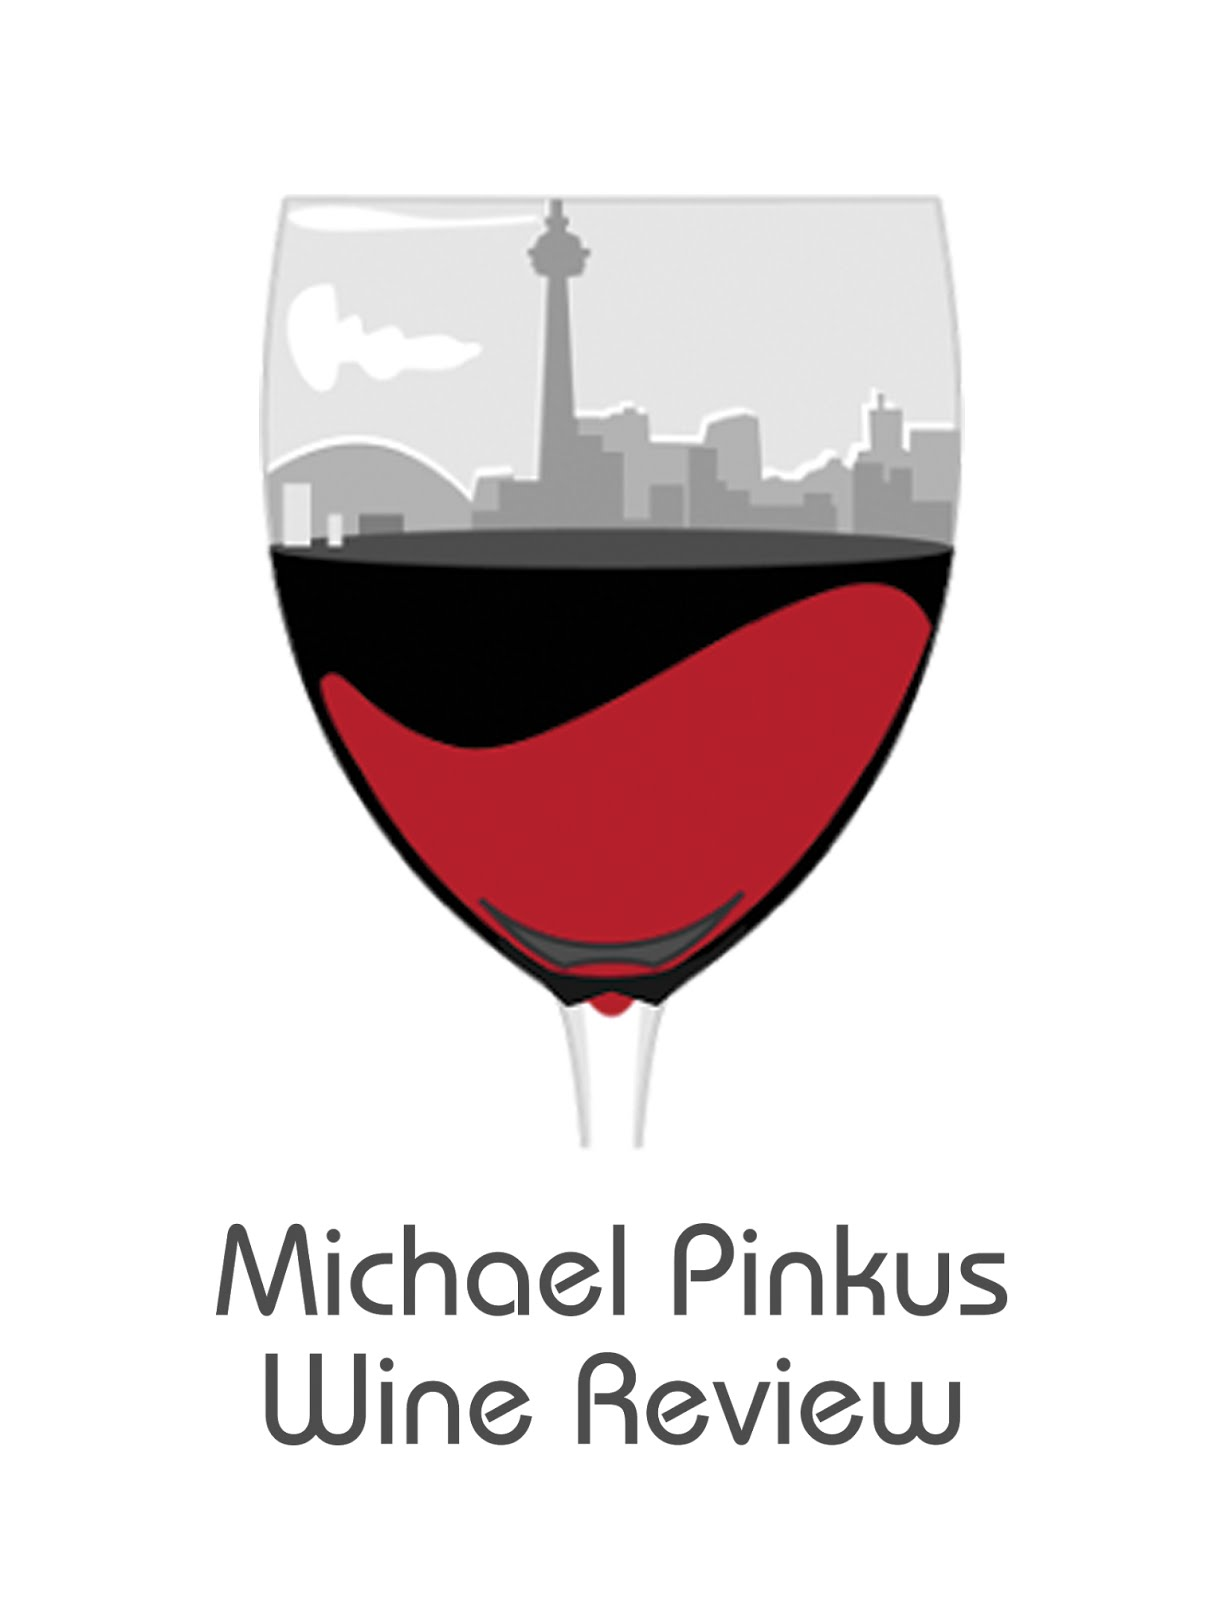 Michael Pinkus Wine Review - Home